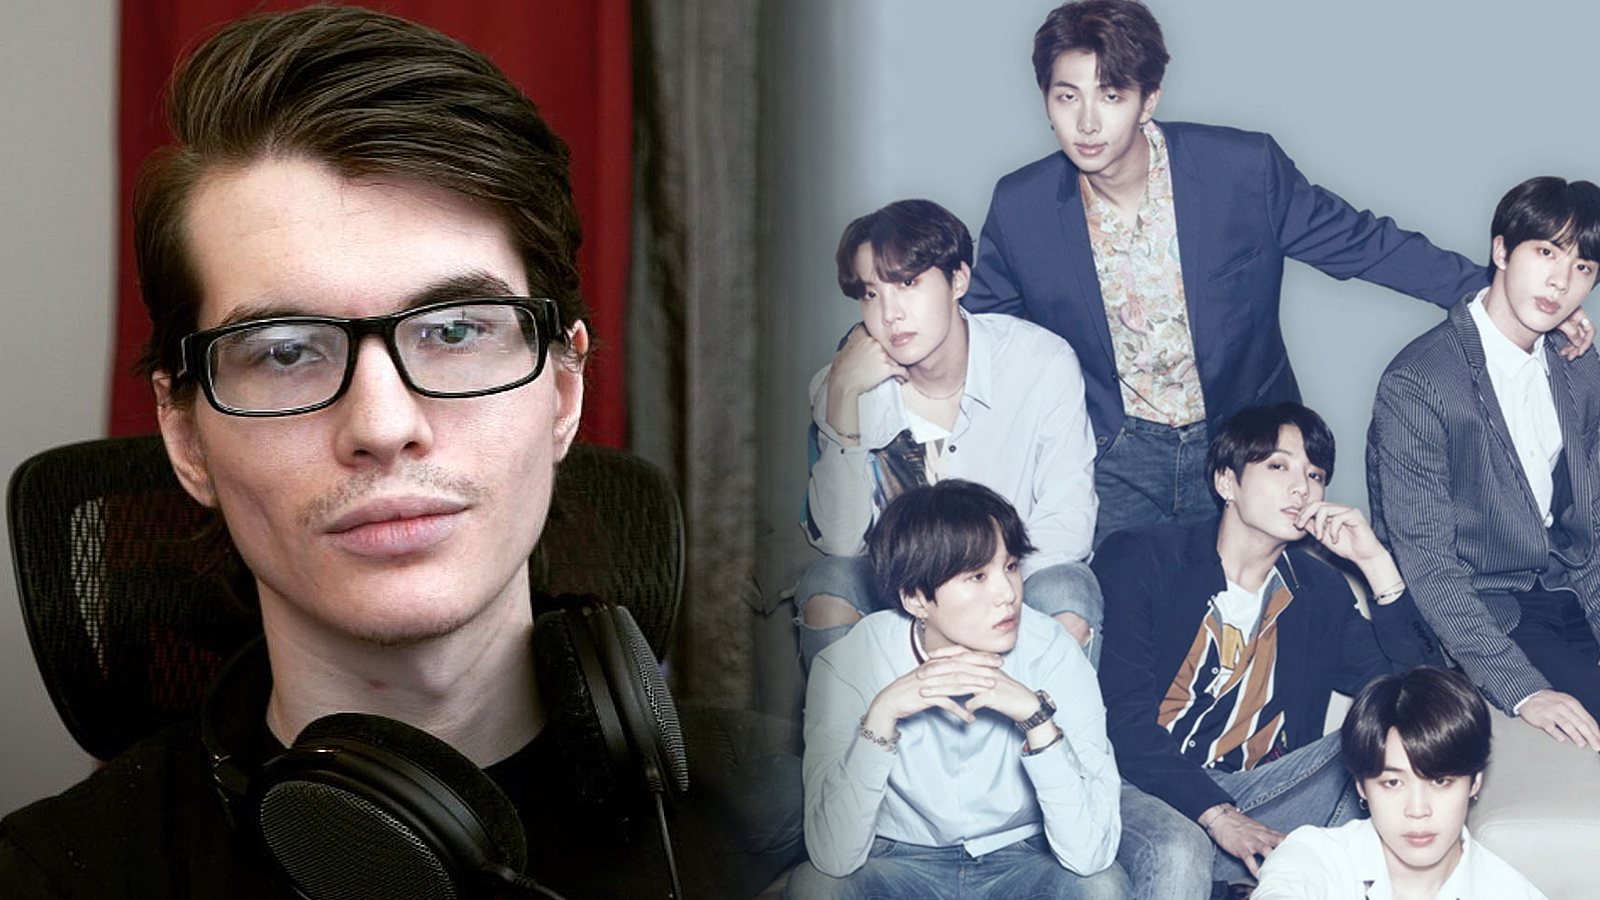 A photo of Froste positioned next to a group photo of the BTS members.